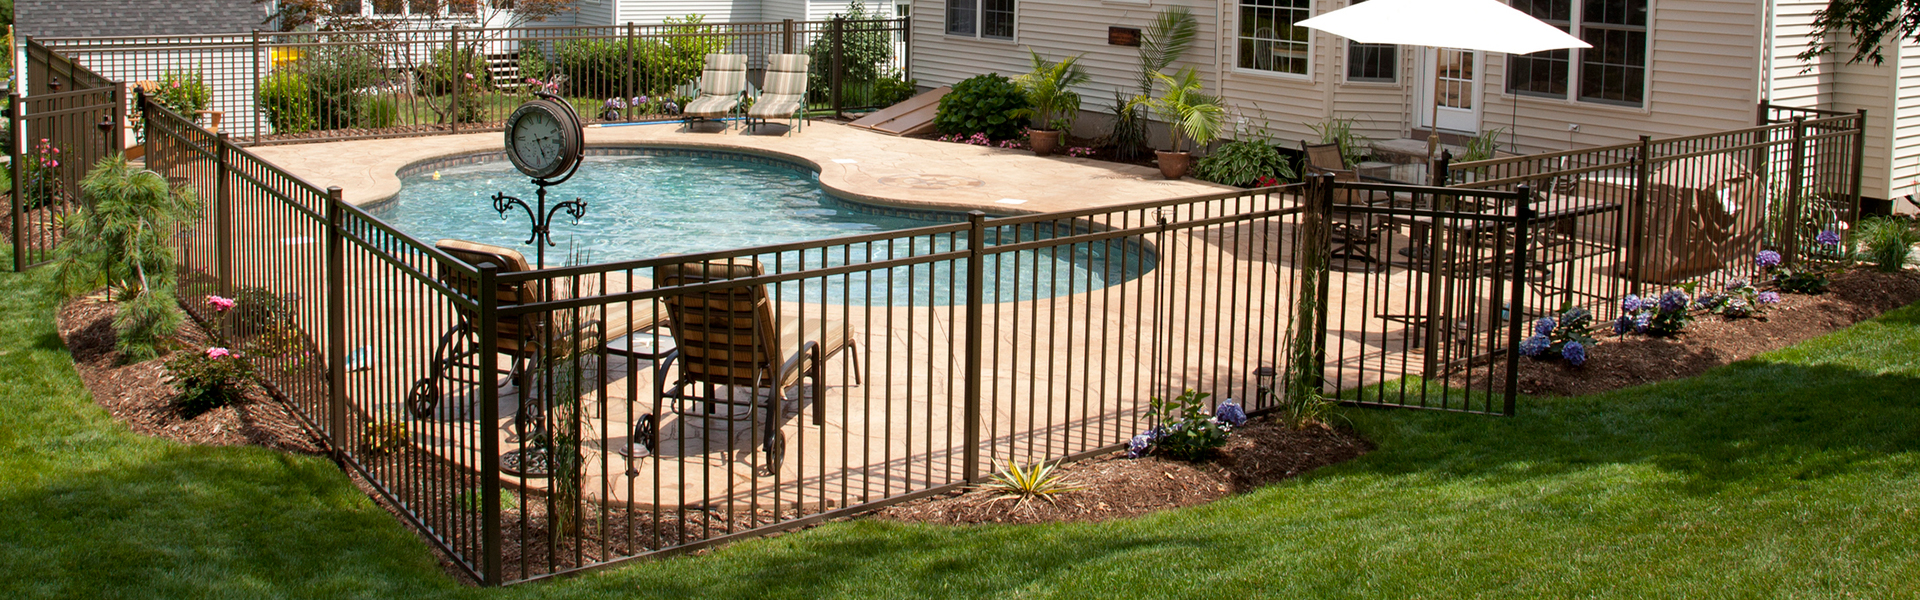 ornamental pool backyard fence